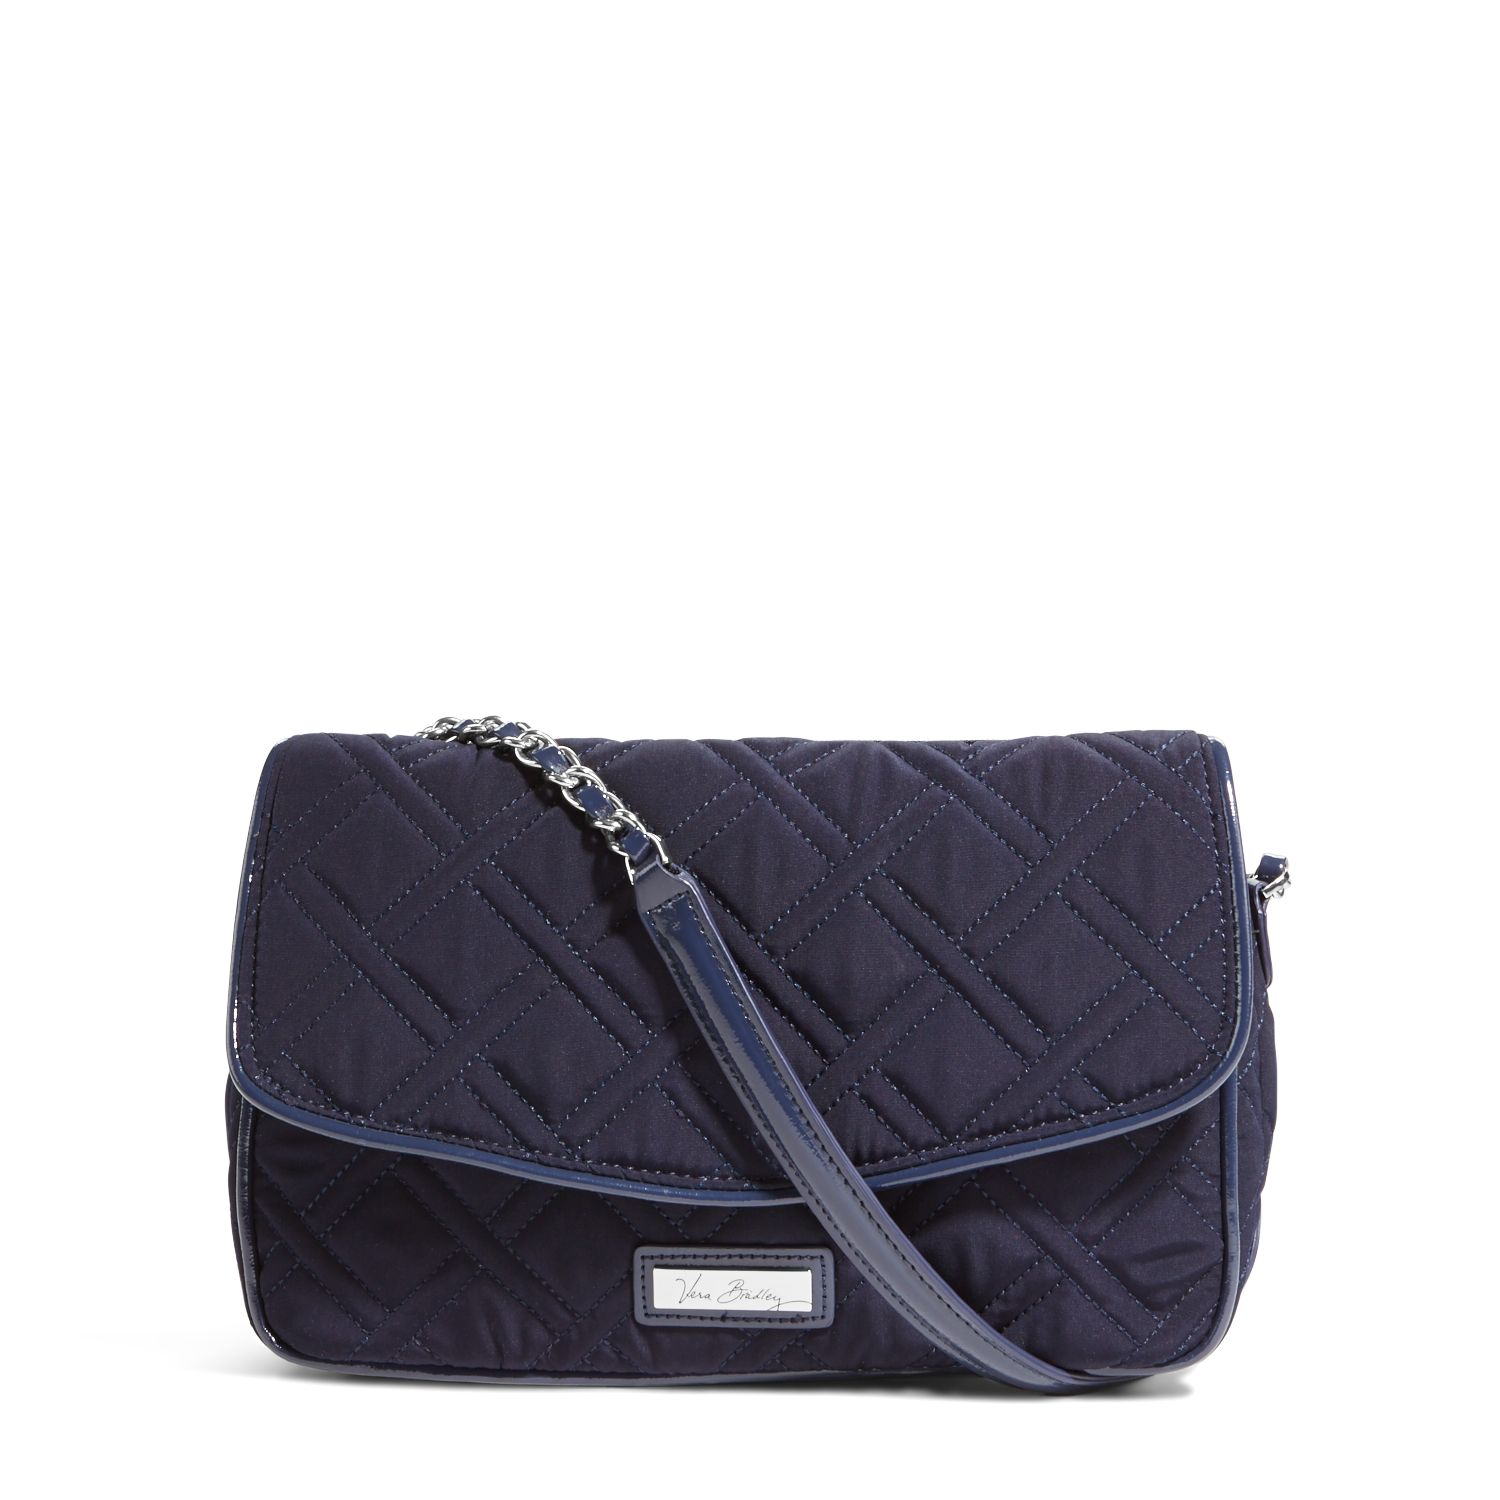 Vera Bradley Chain Shoulder Bag in Classic Navy with Navy